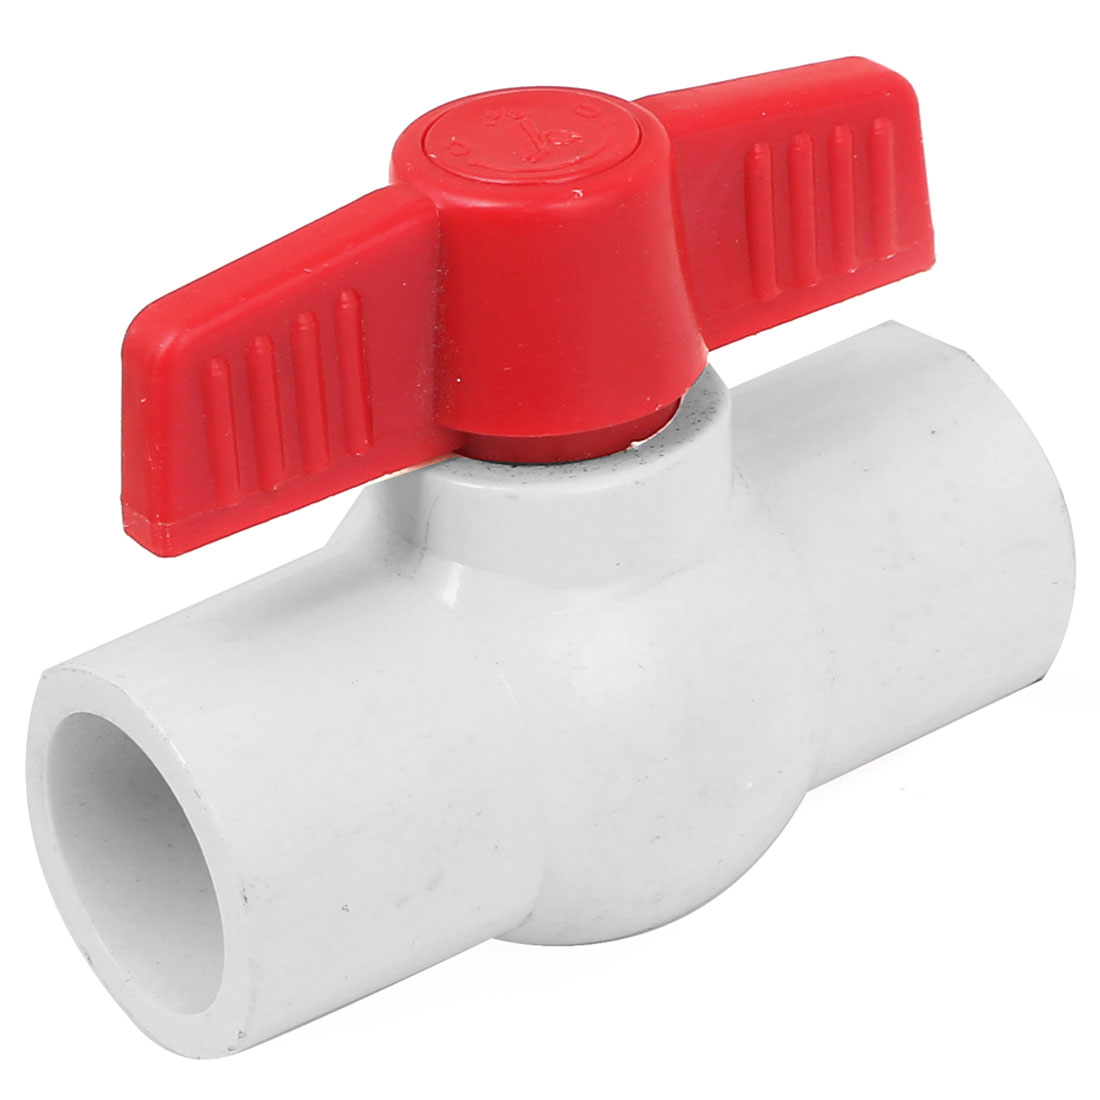 2 Ways Water Shut Off PVC Slip Ends Red T Handle Ball Valve White